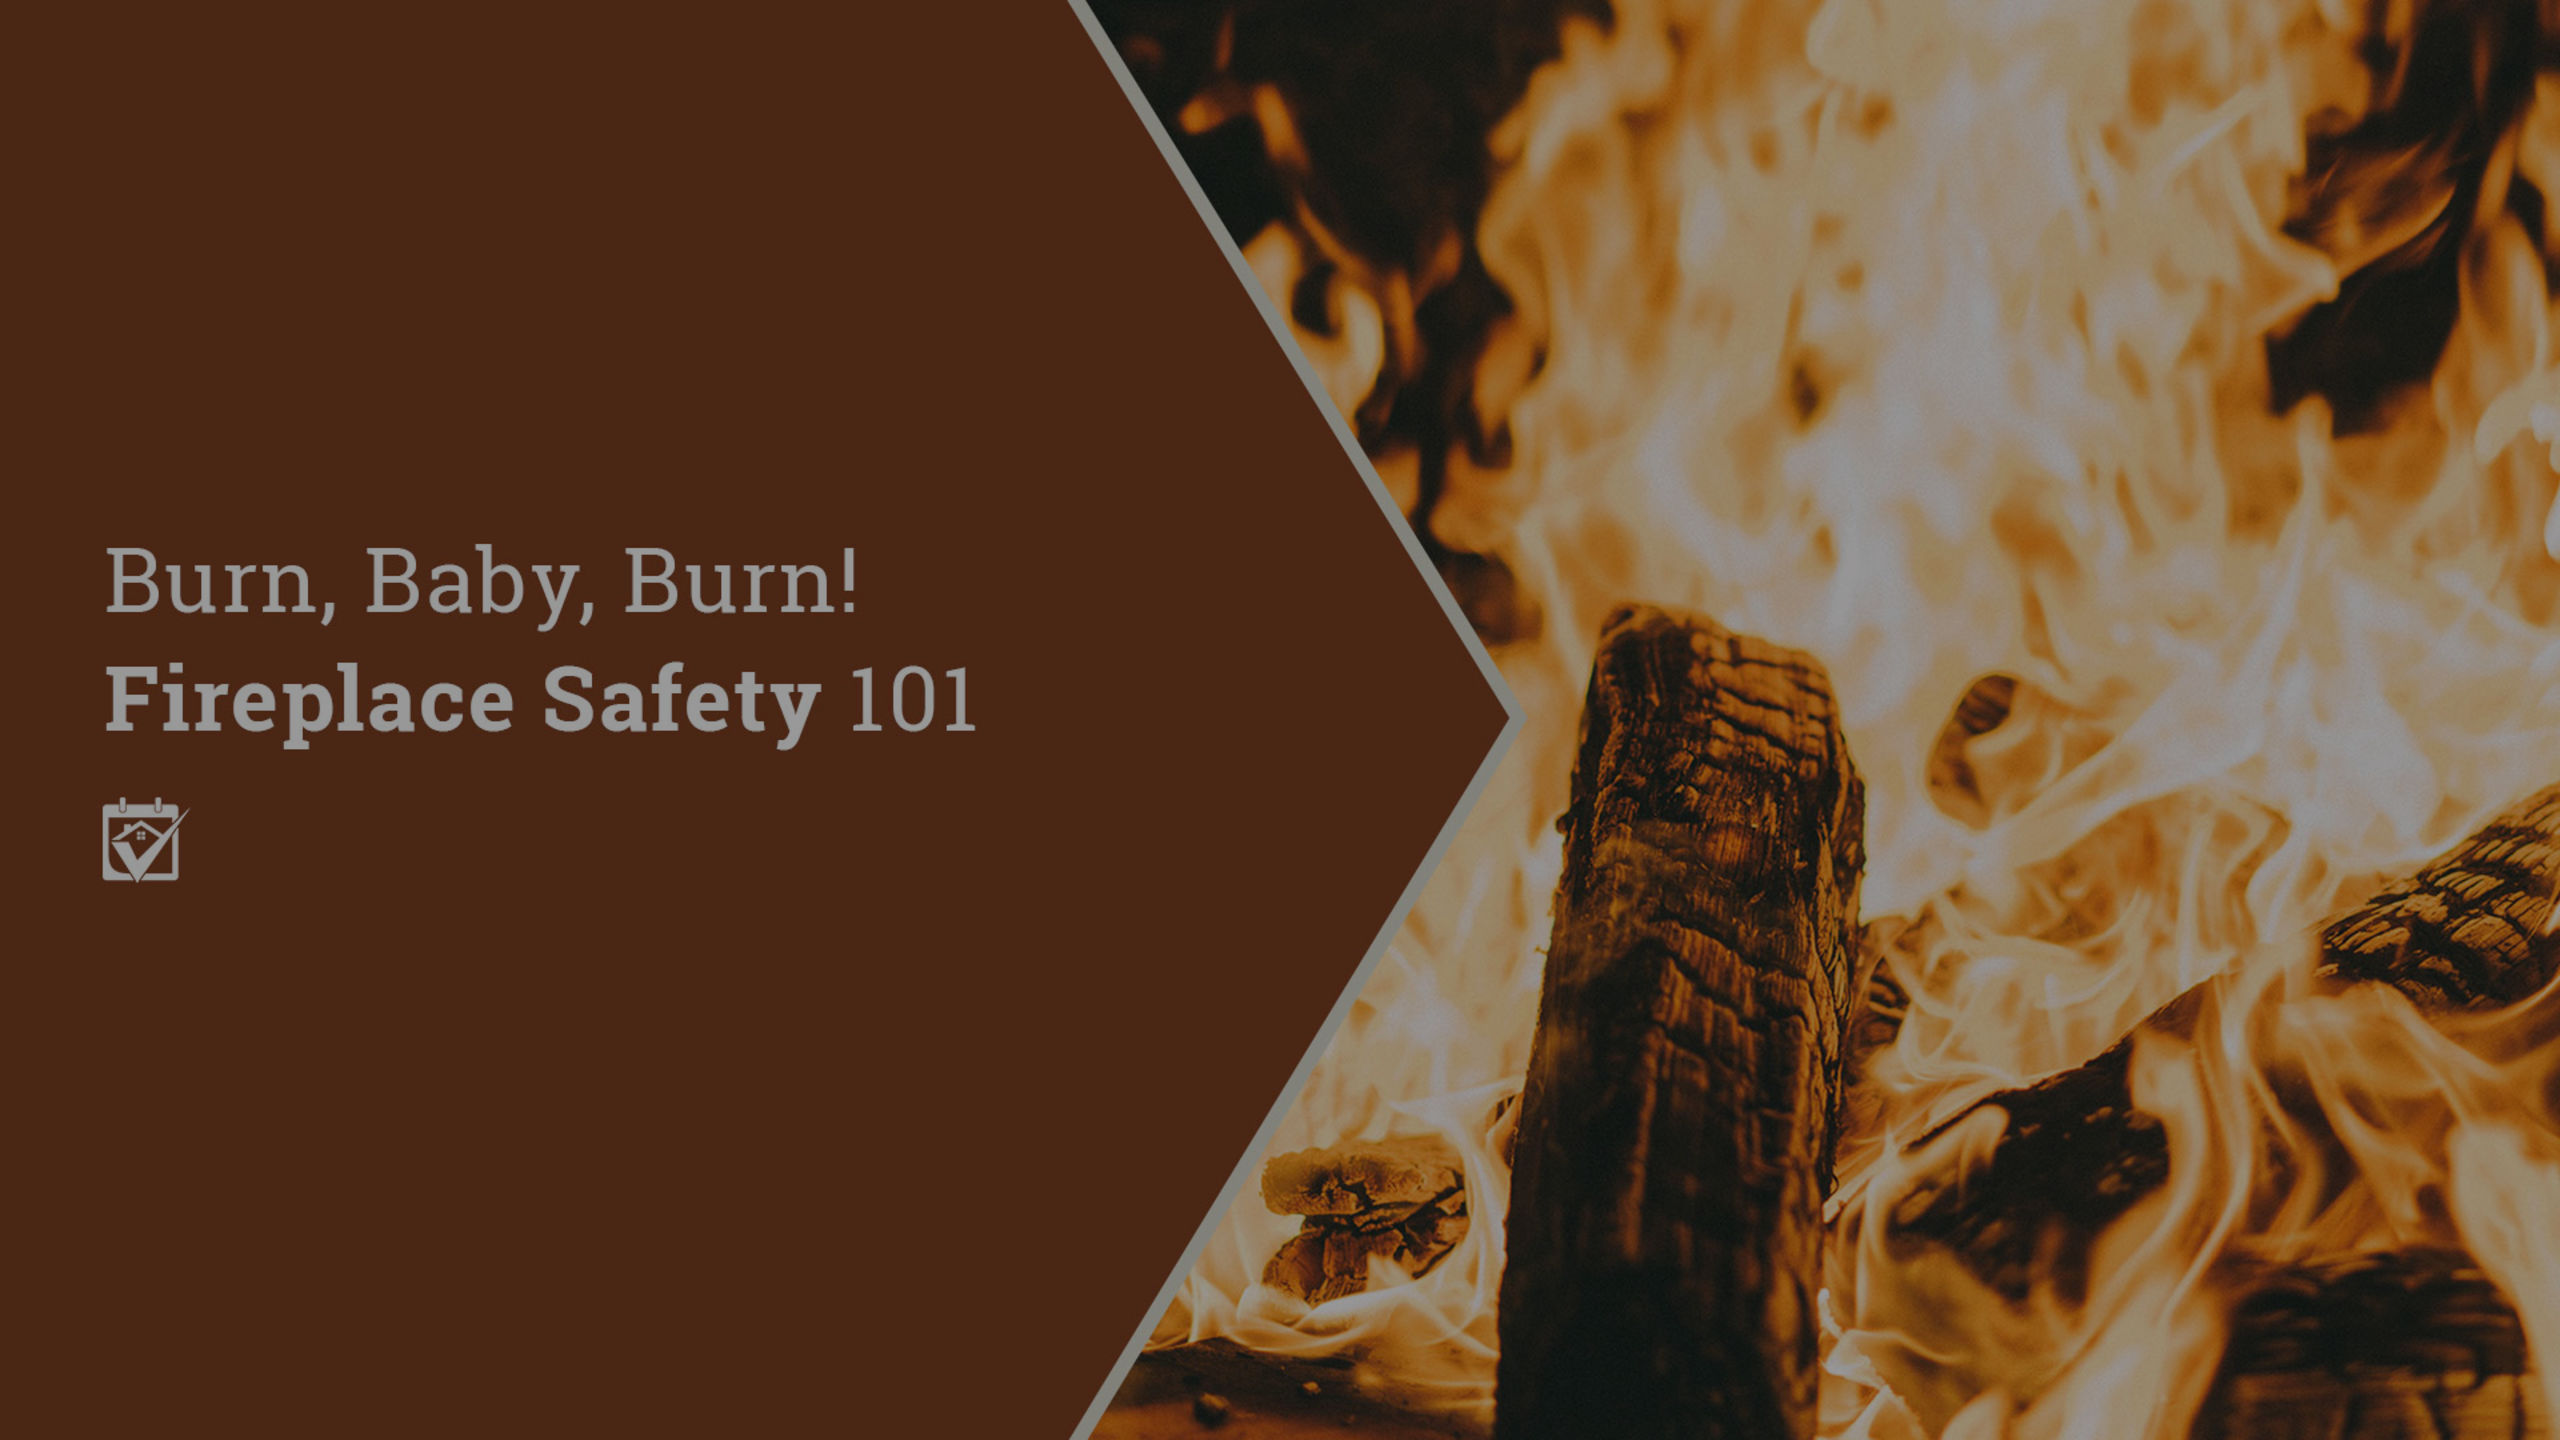 Burn, Baby, Burn! Fireplace Safety 101